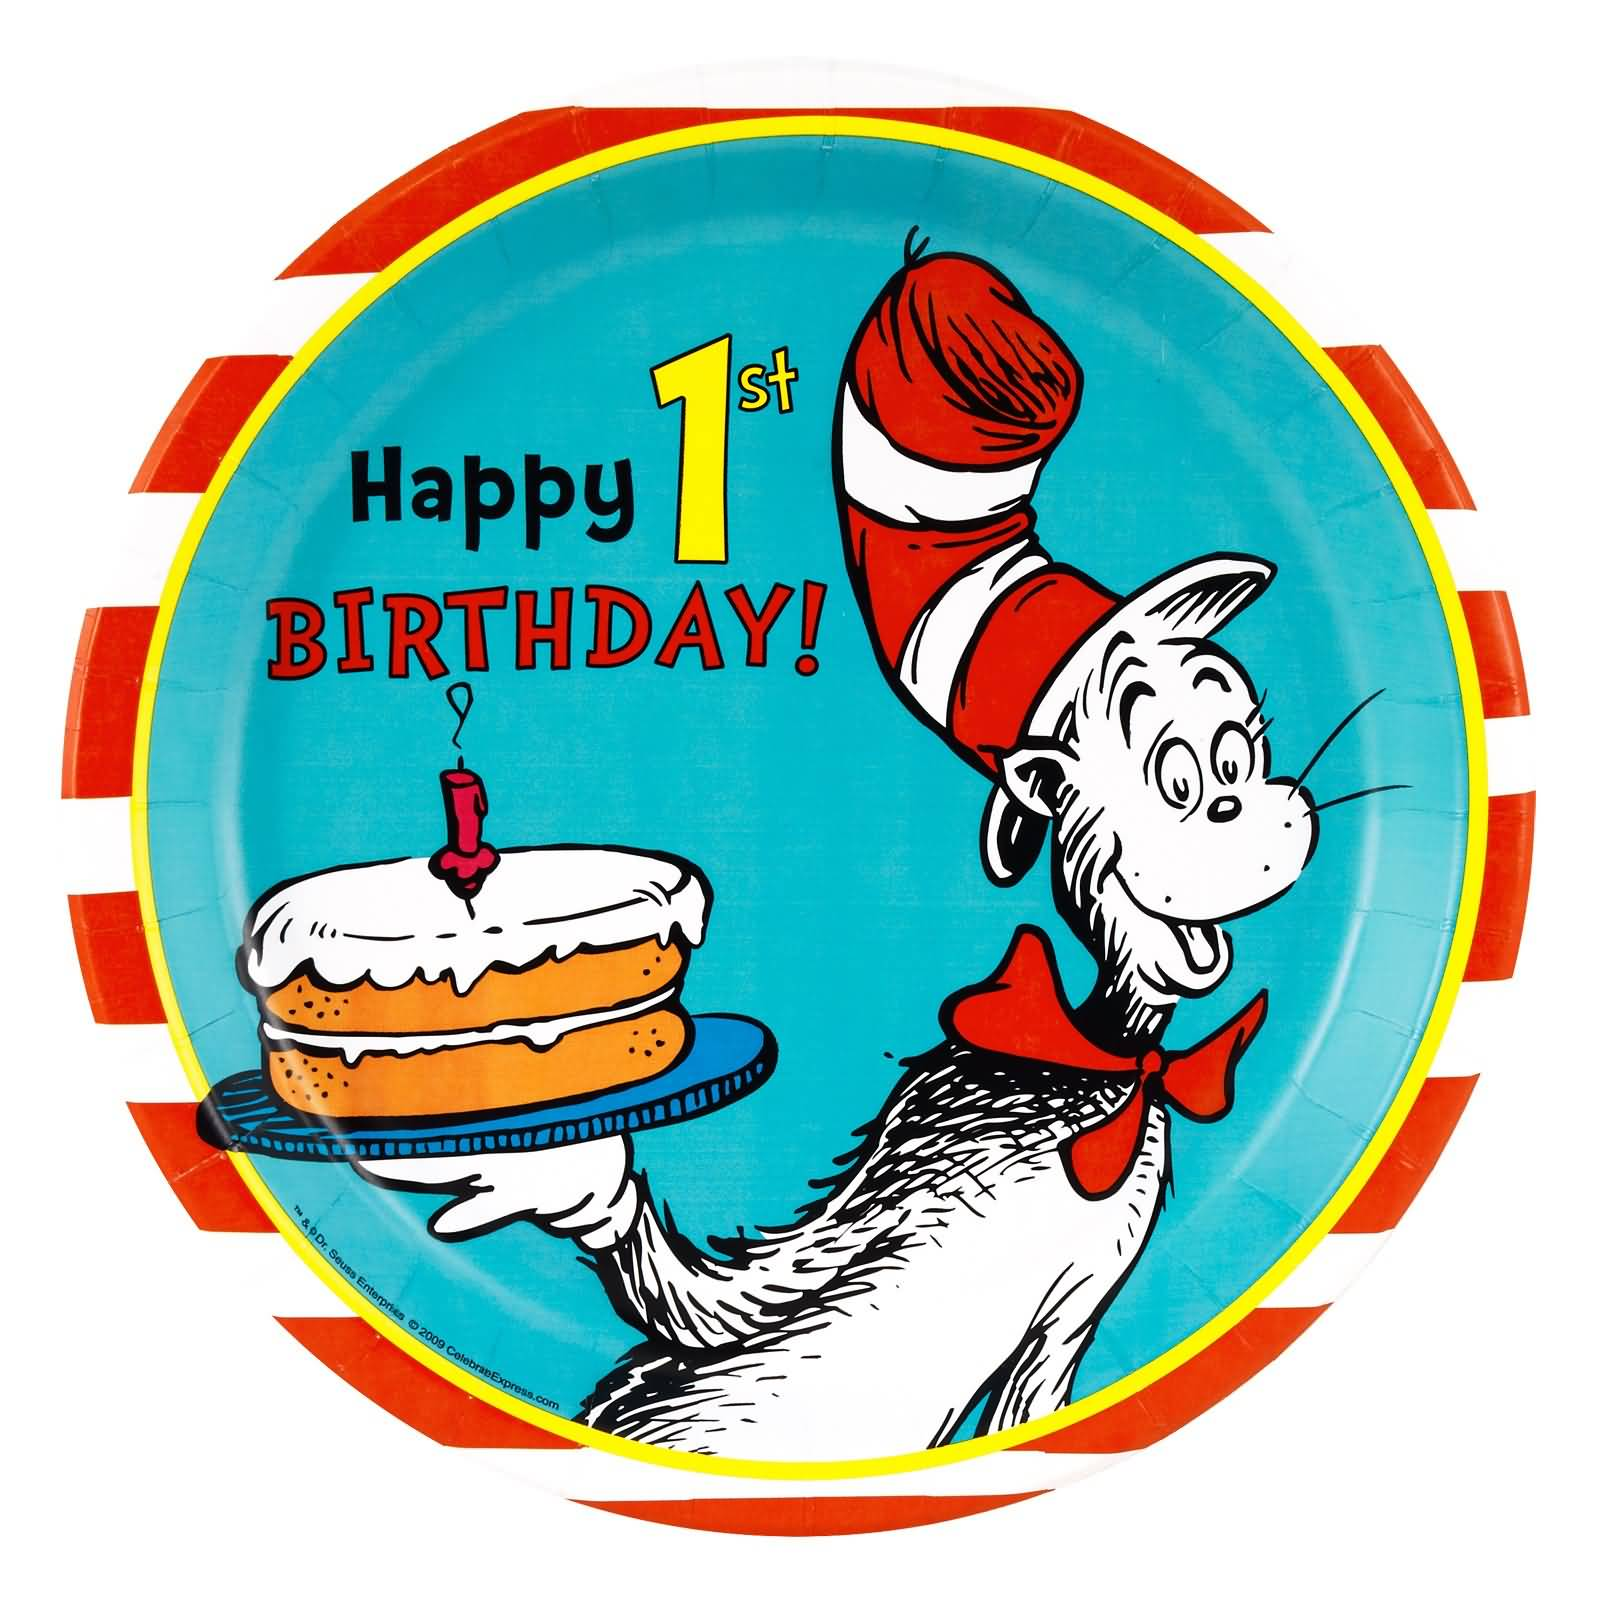 20 Dr Seuss Day Wish Pictures